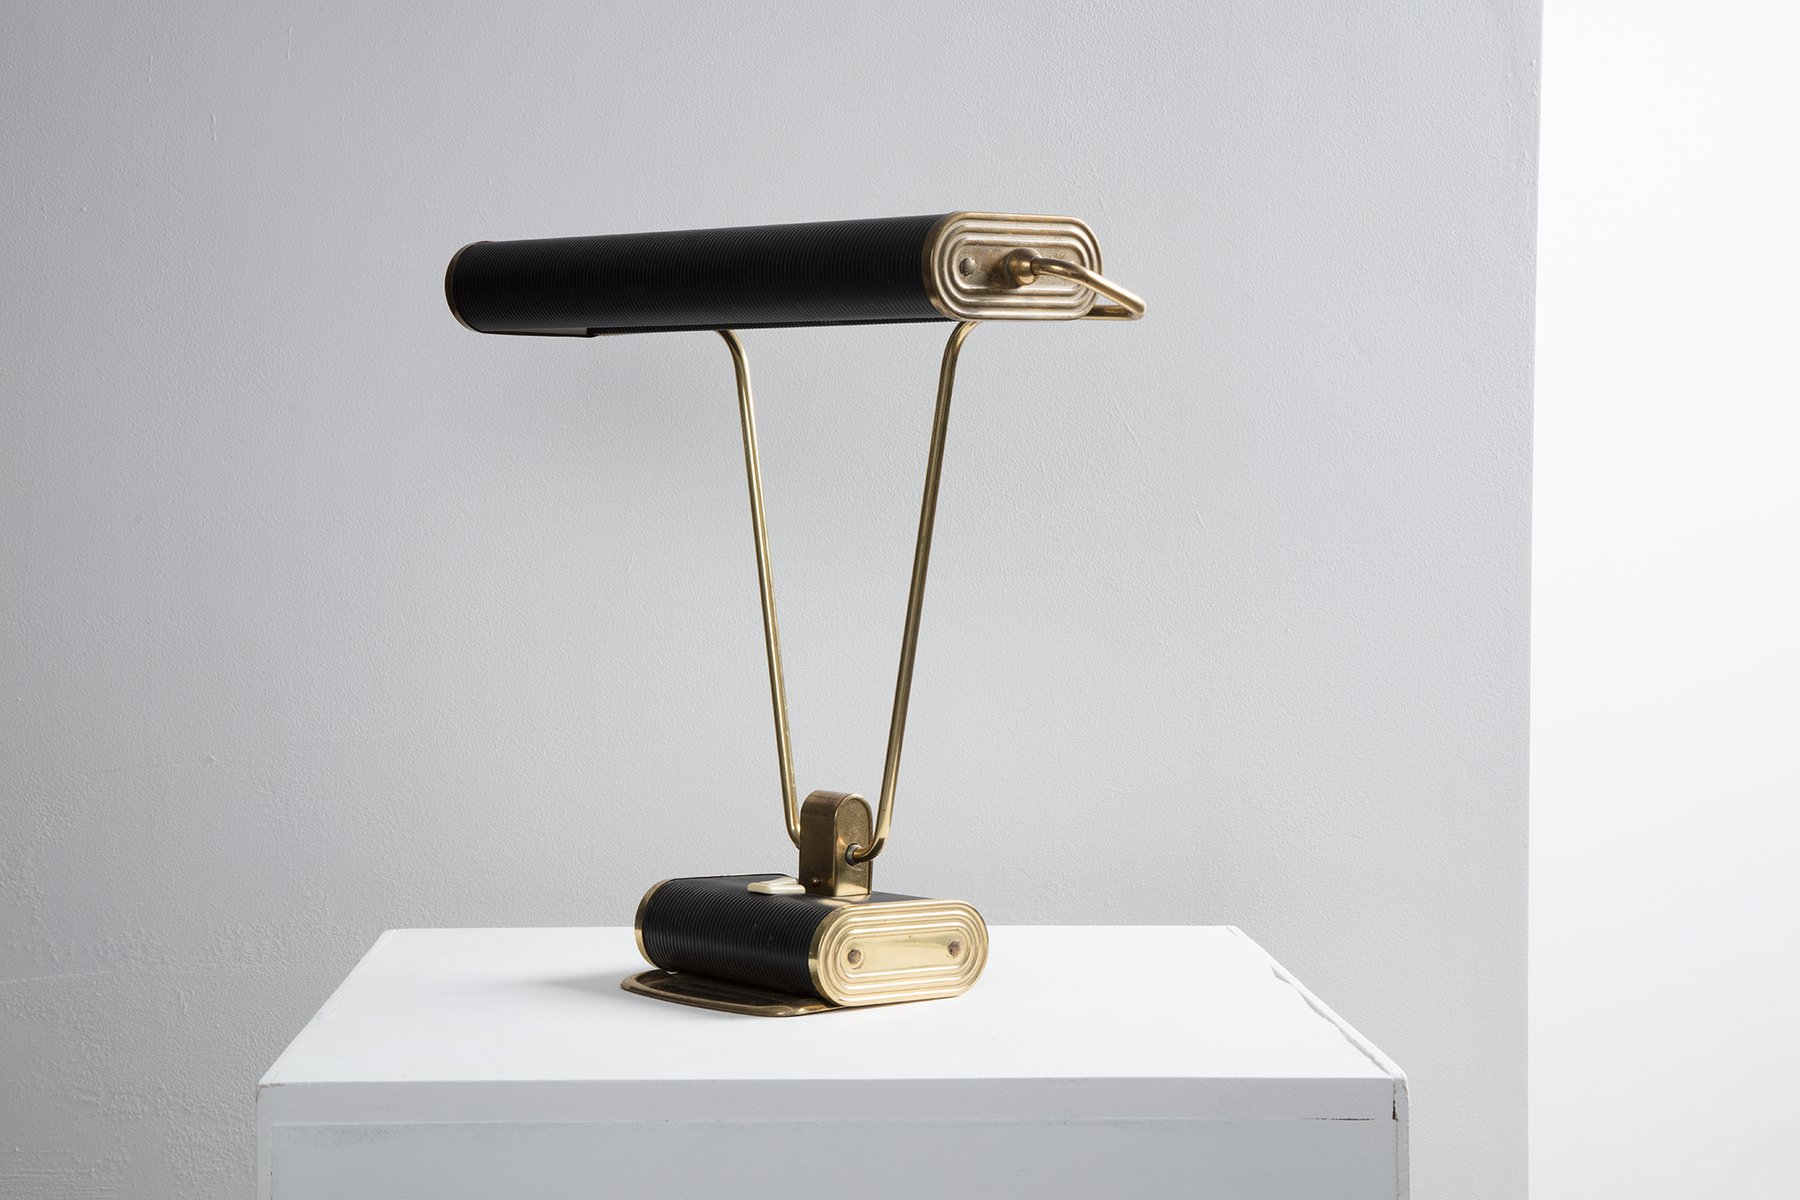 N71 Desk Lamp by Eileen Gray for Jumo 1940s for sale at Pamono